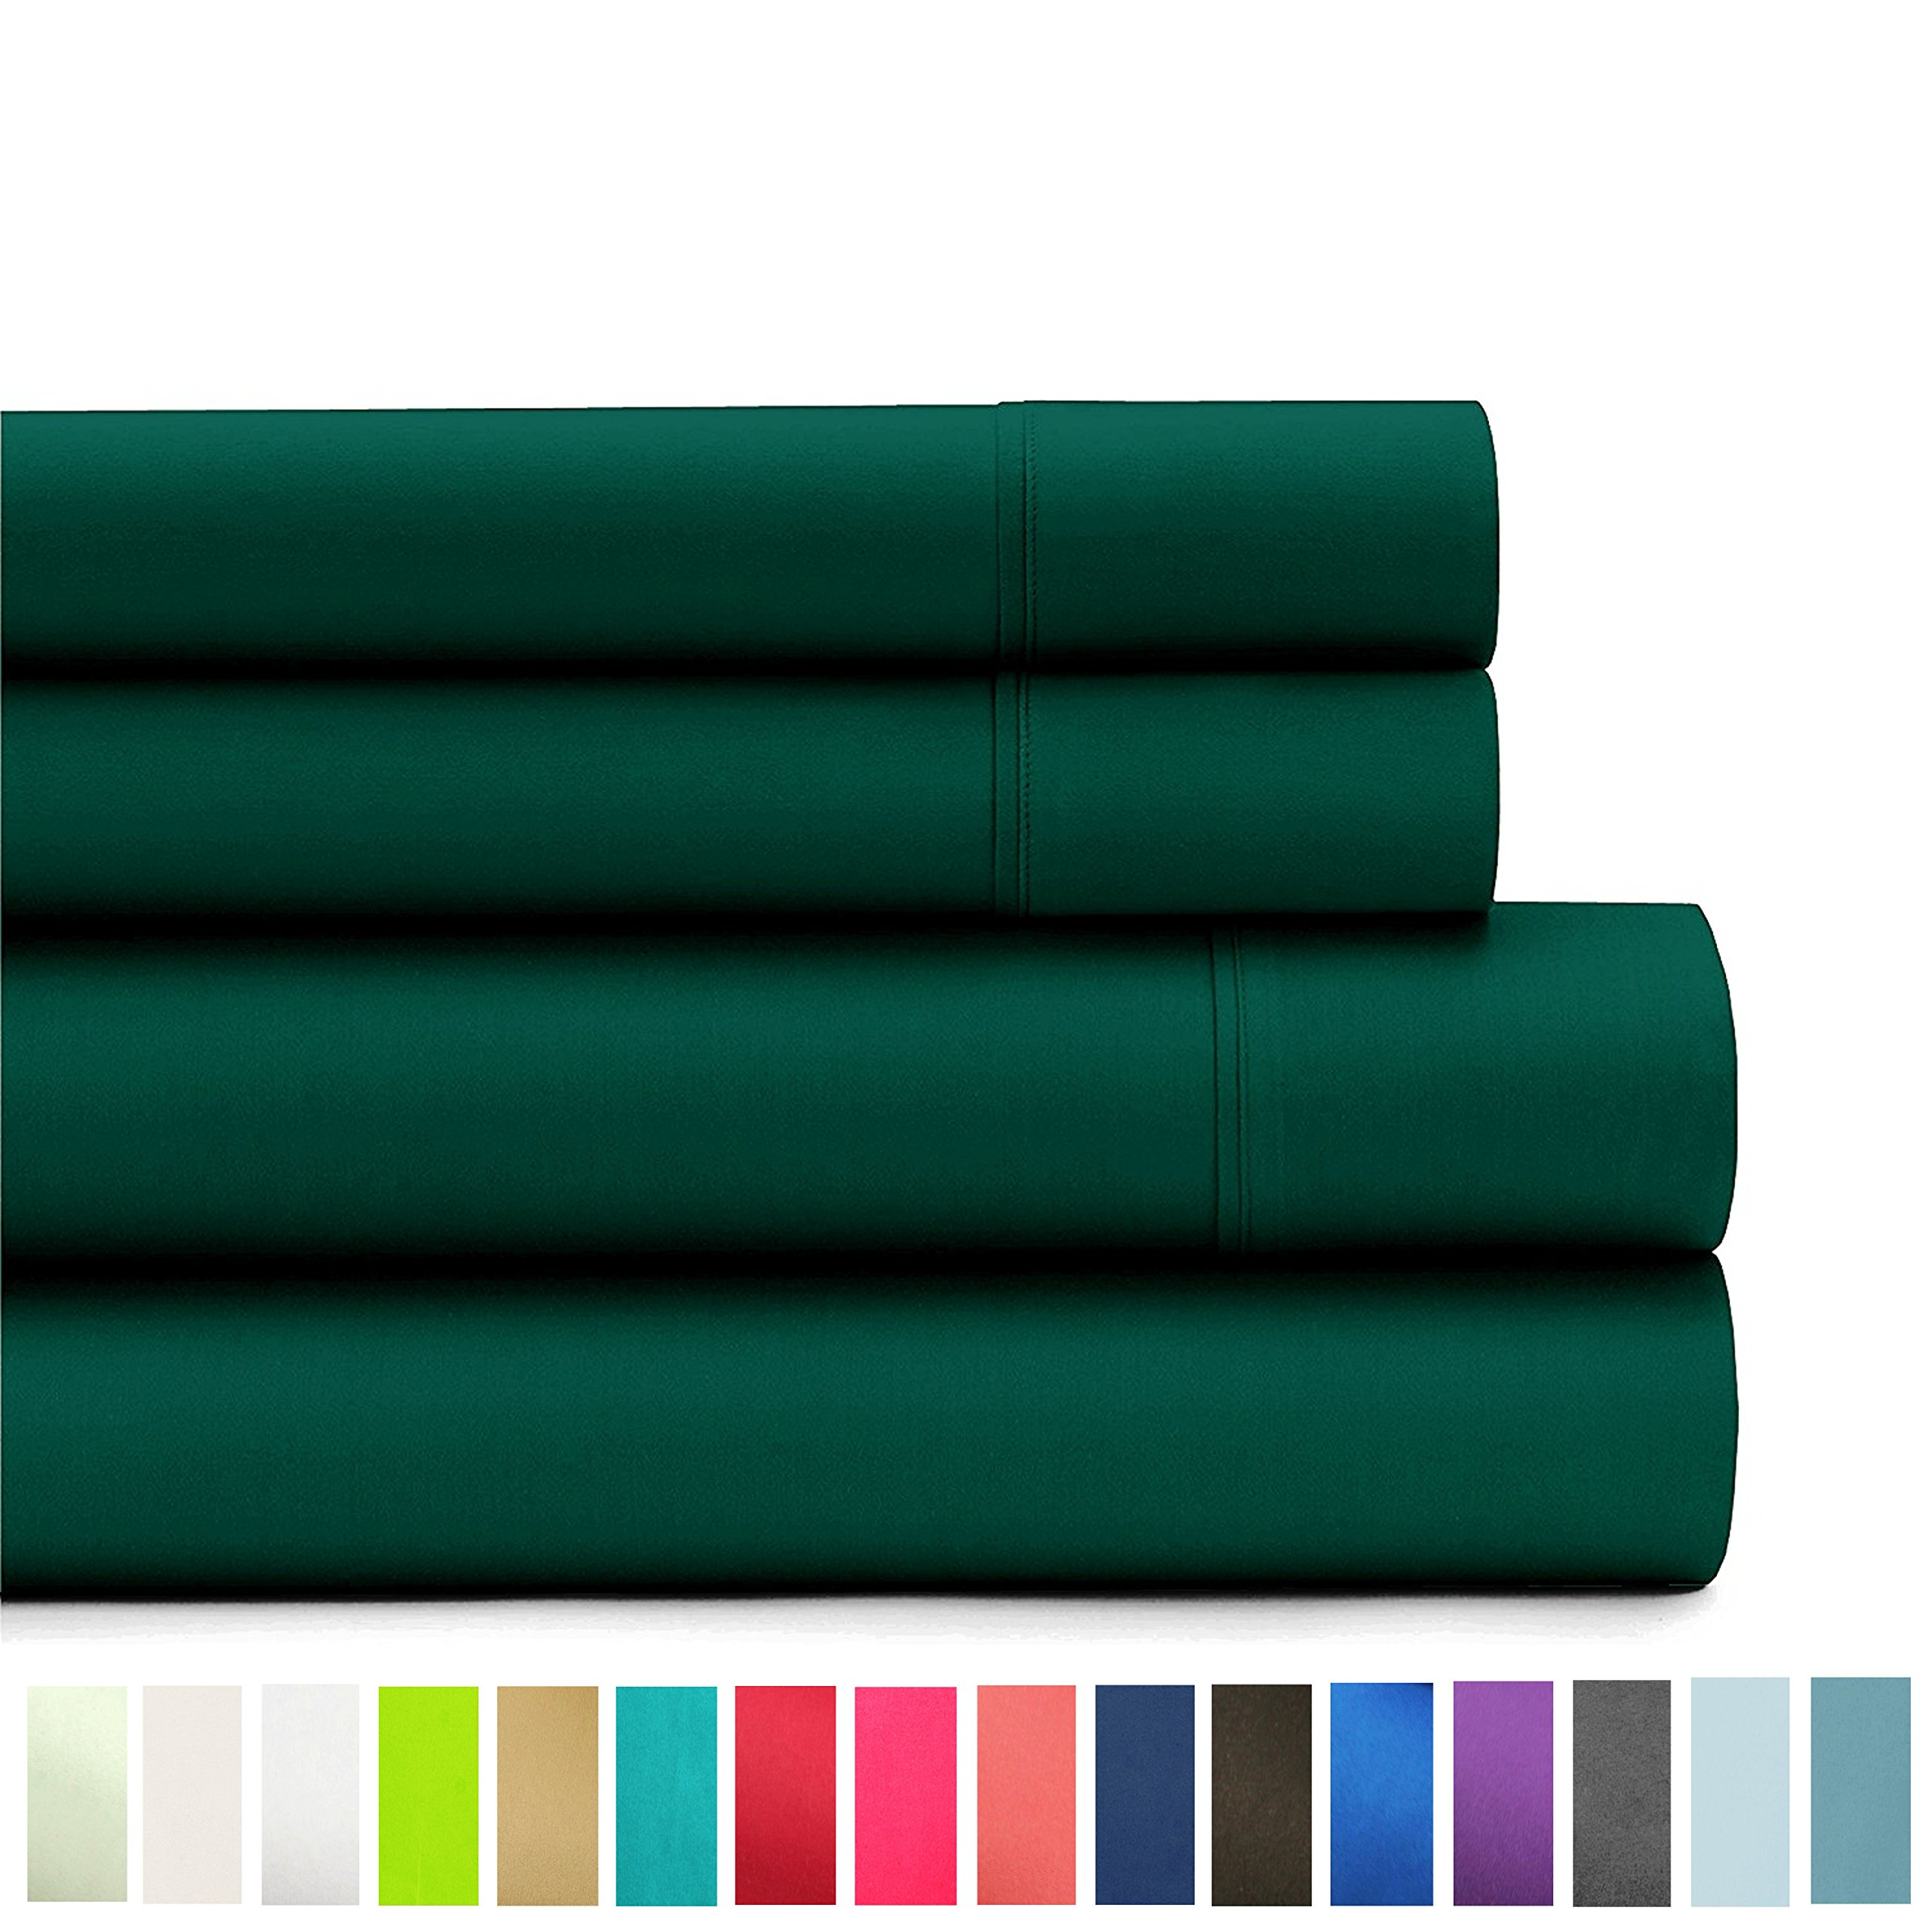 American Home Collection Deluxe 4 Piece Bed Sheet Sets Highest Quality of Brushed Microfiber Wrinkle Resistant Silky Soft Touch (Twin, Forest Green)